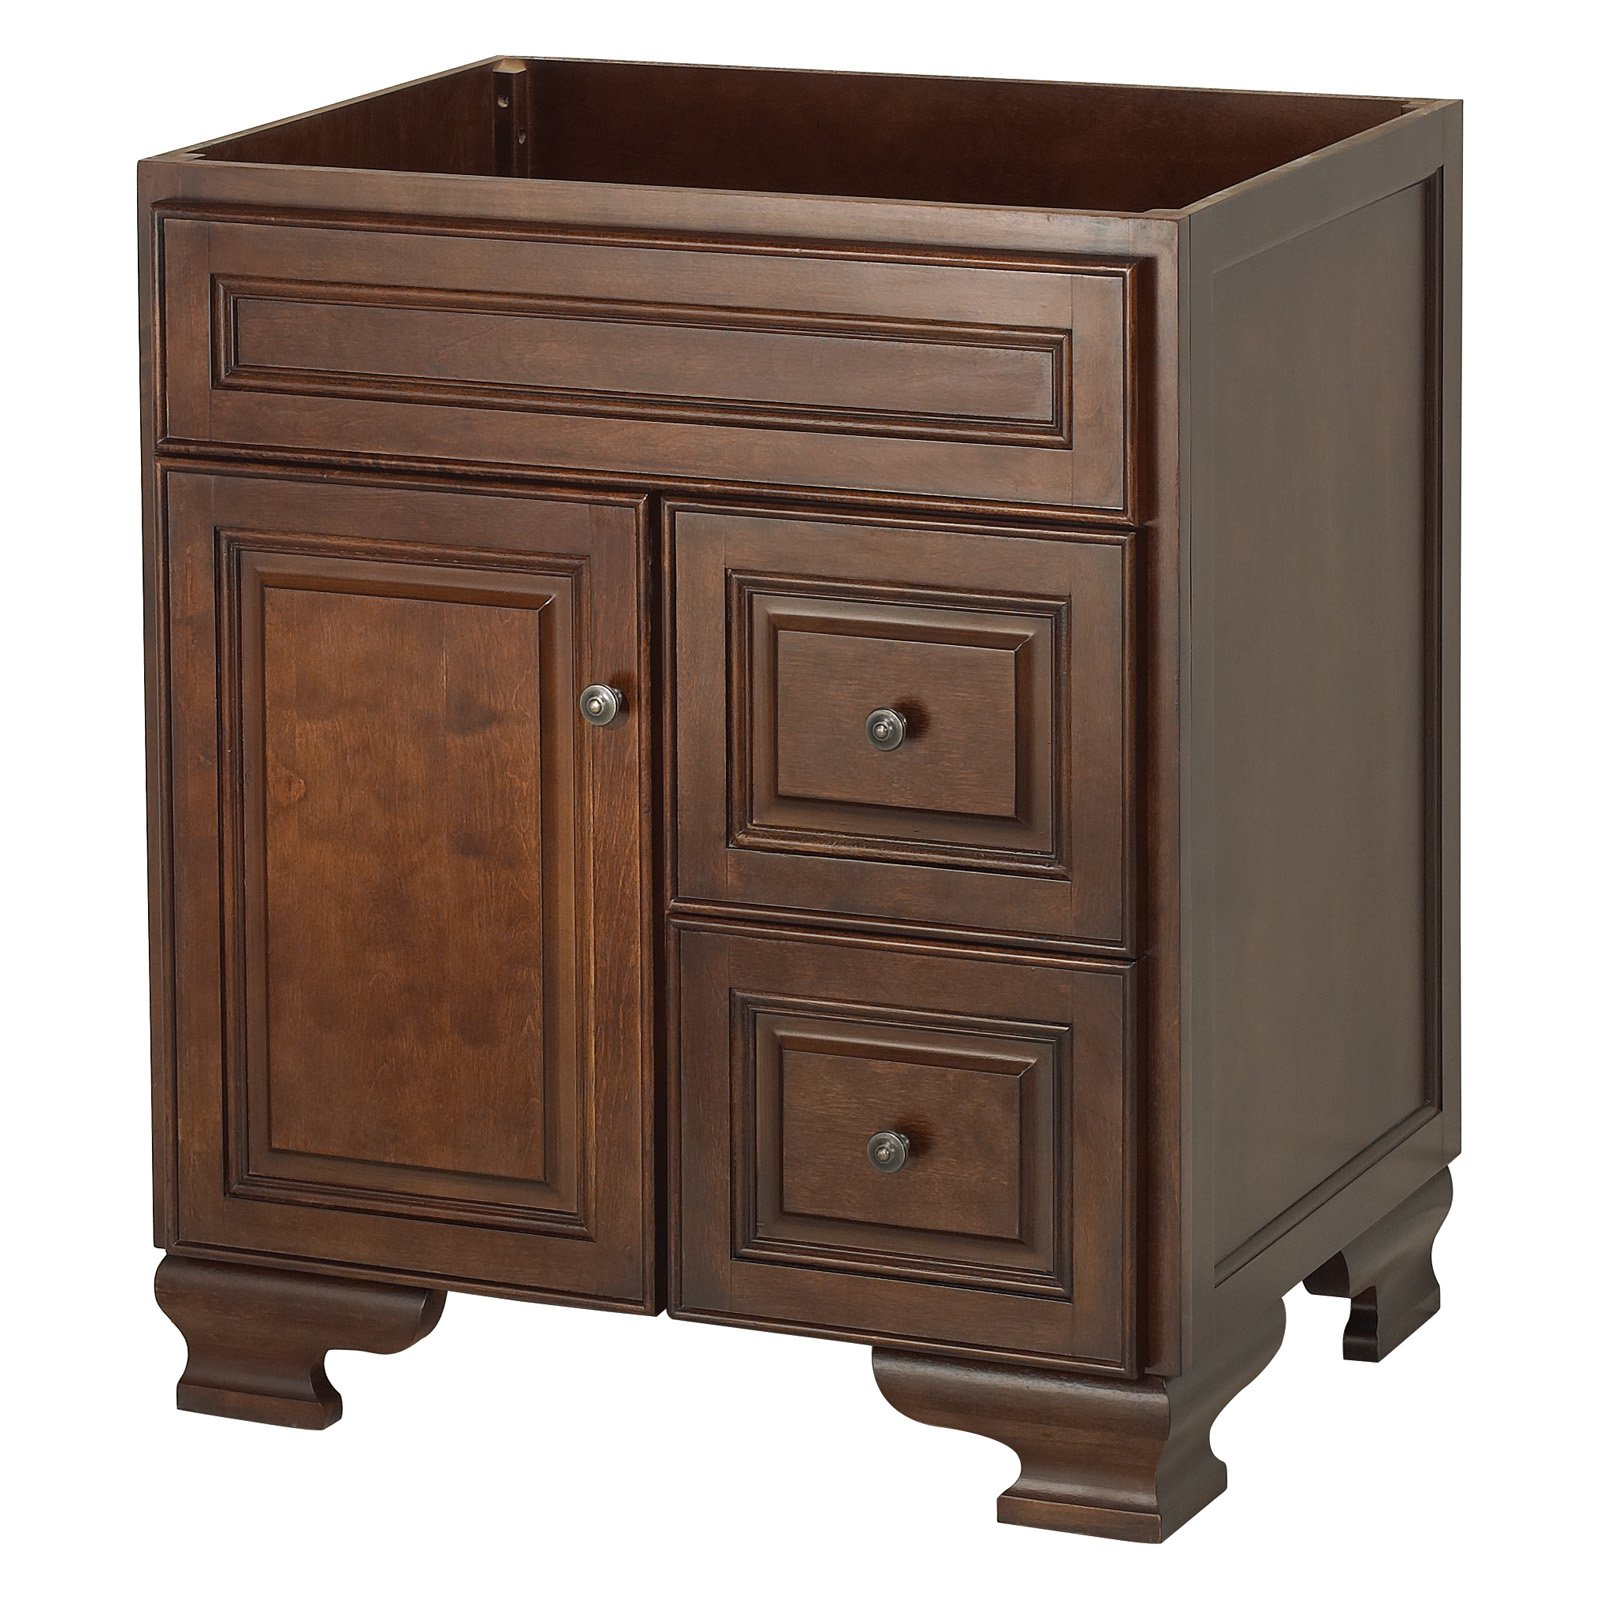 Glamorous Foremost Hawthorne 30 In. Dark Walnut Single Bathroom Vanity With within Inspirational Bathroom Vanity No Sink